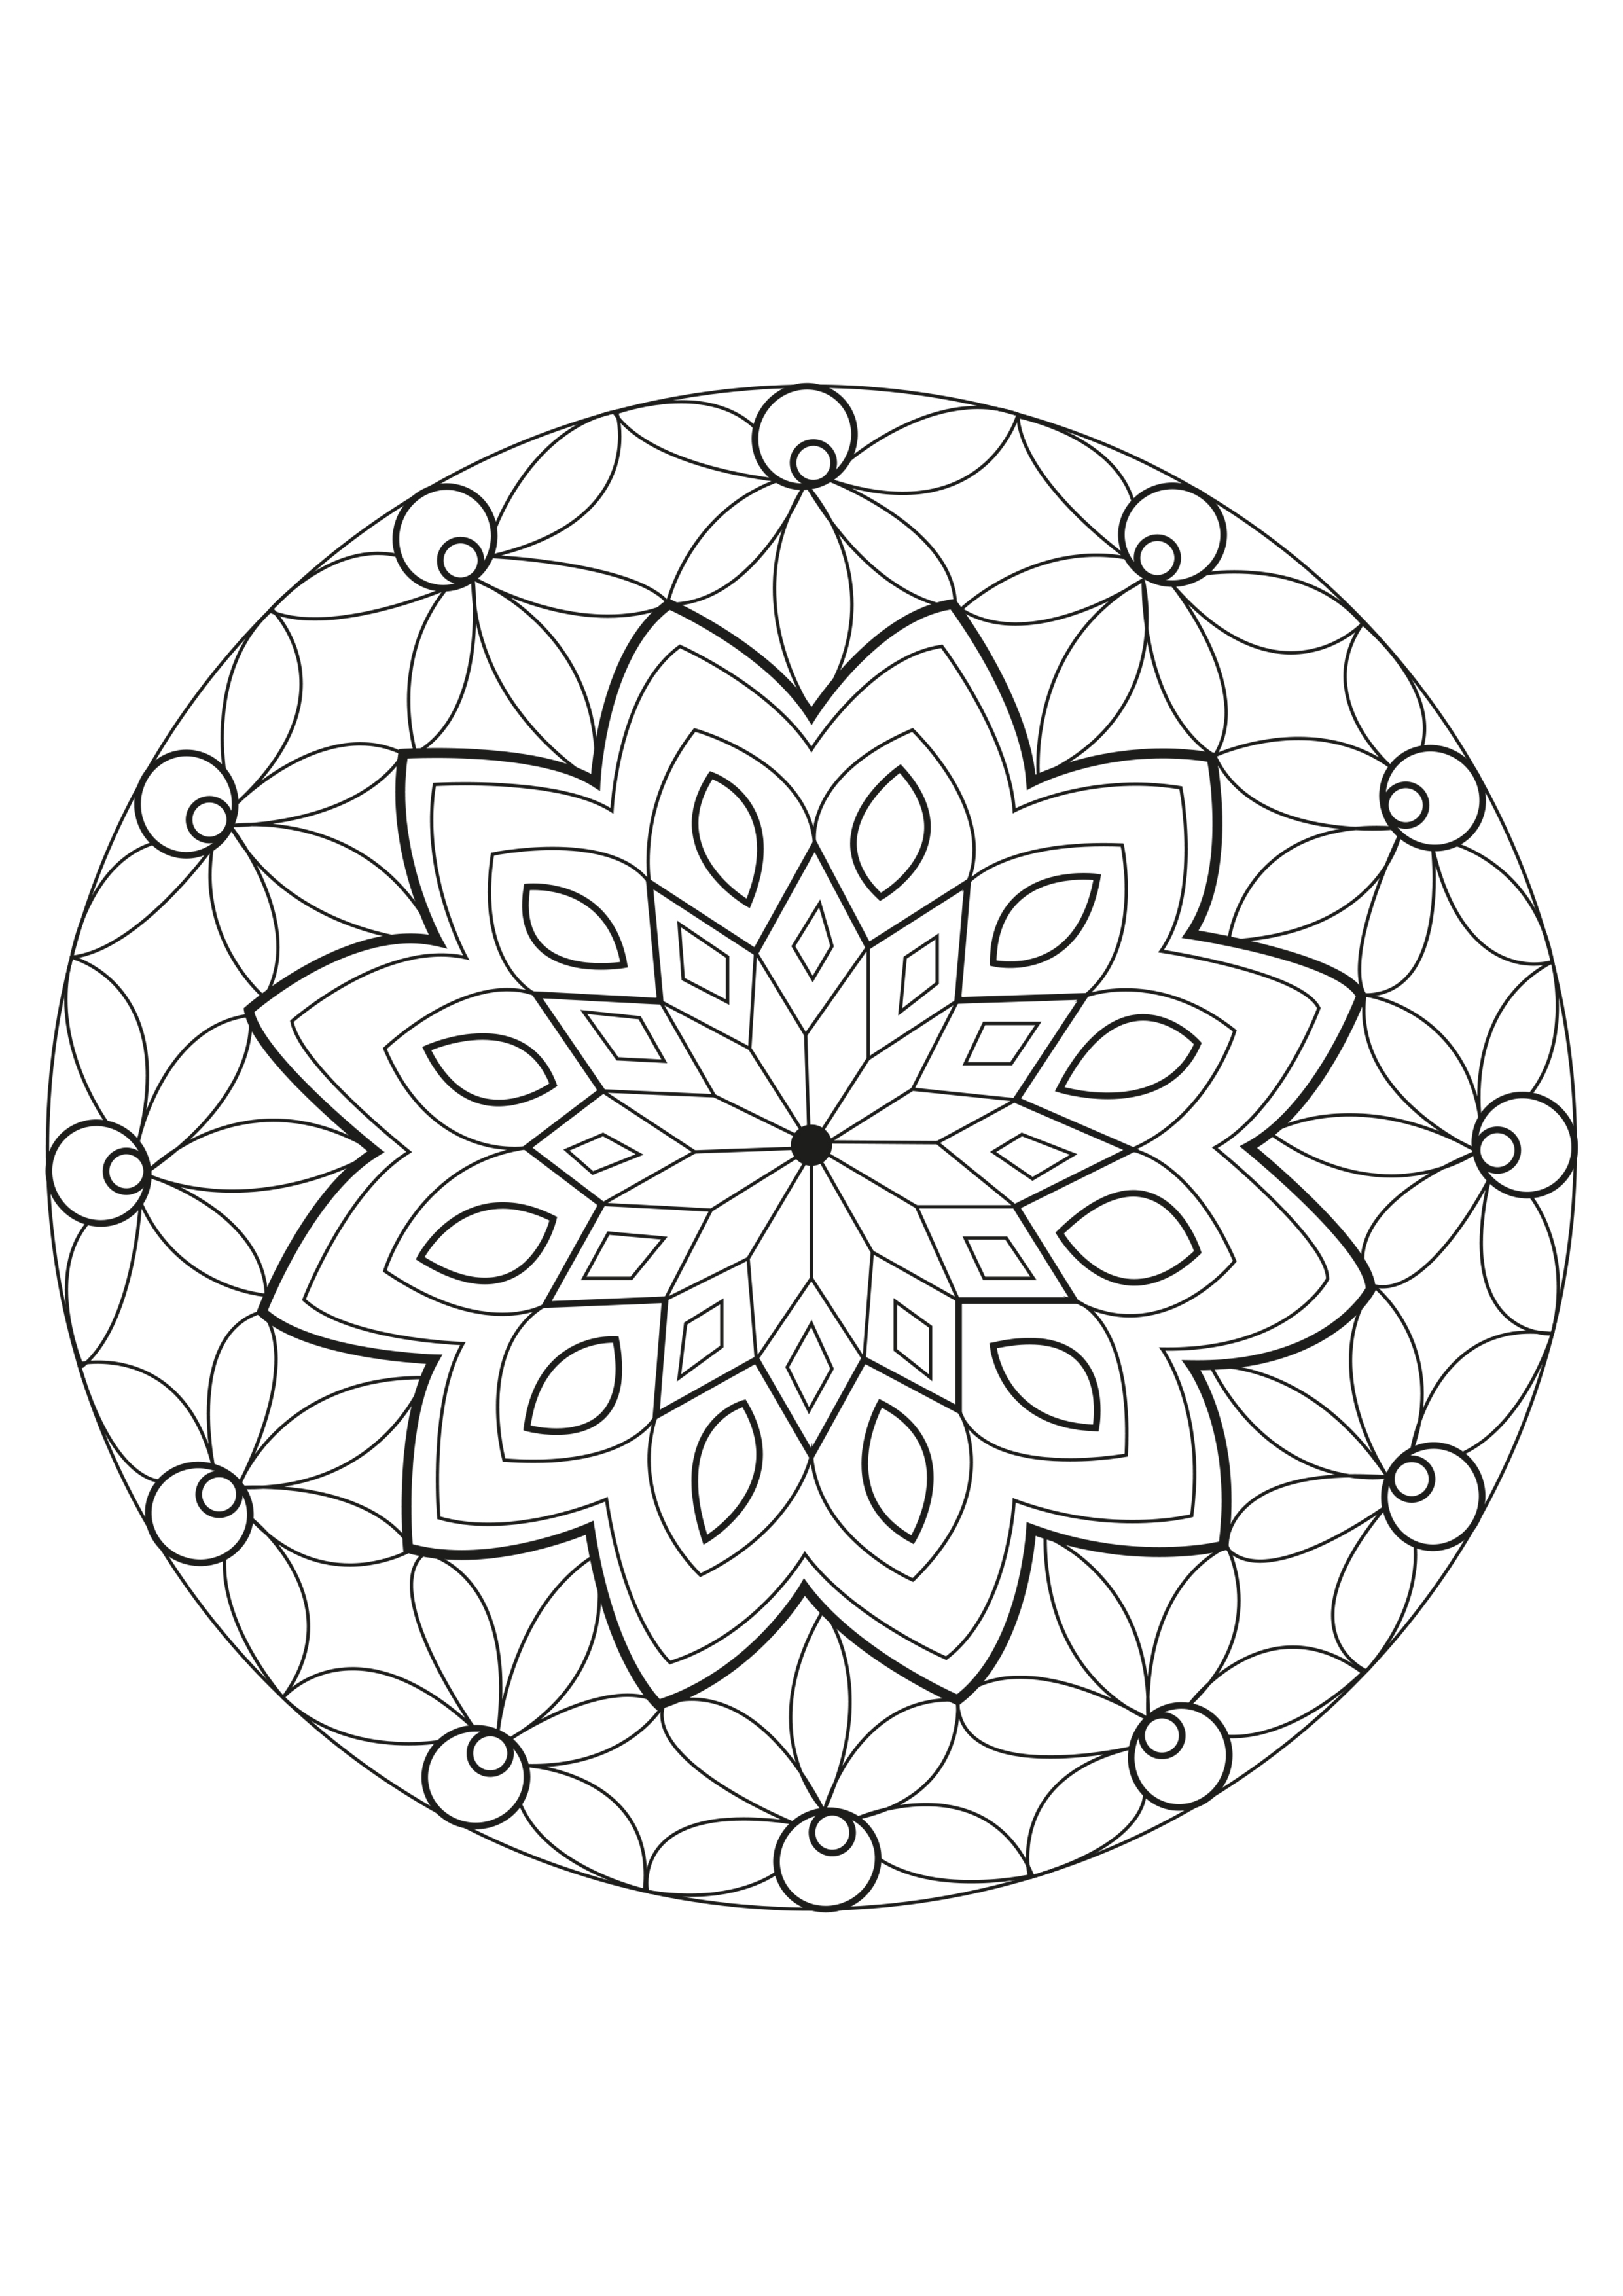 coloring page adults mandala celine a special mandala made by celine from the gallery mandalas